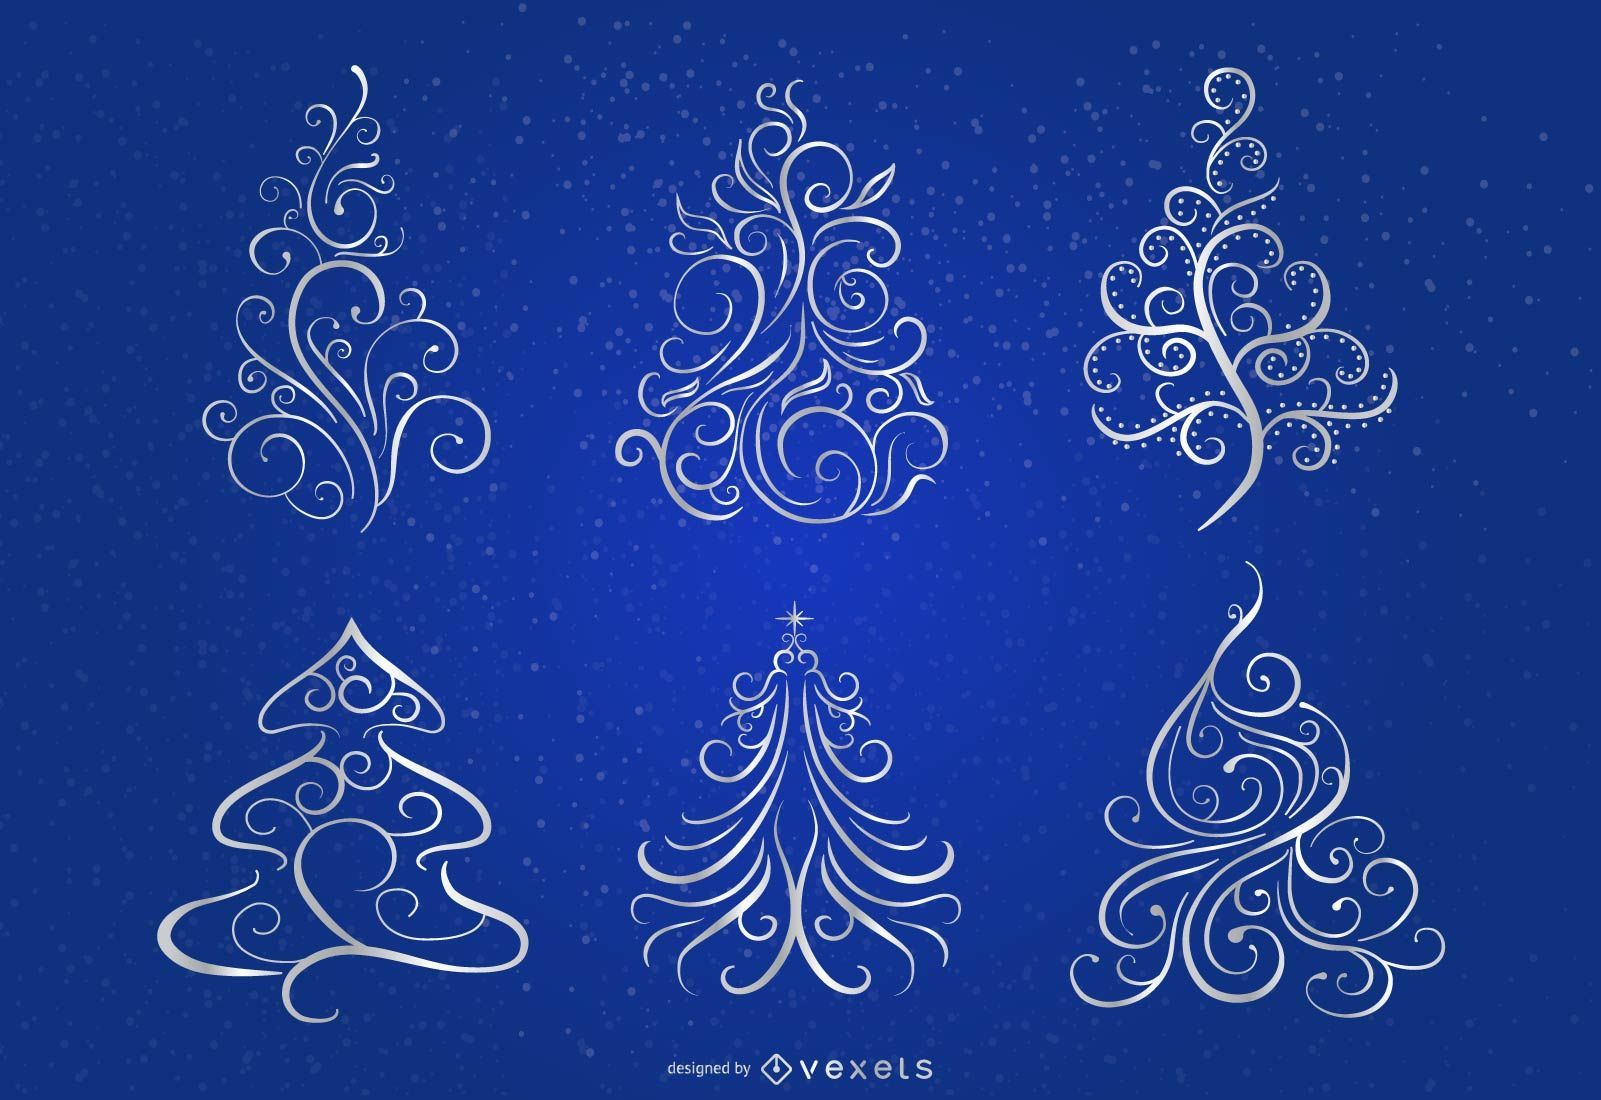 Swirling Floral 6 Christmas Trees on Blue Background